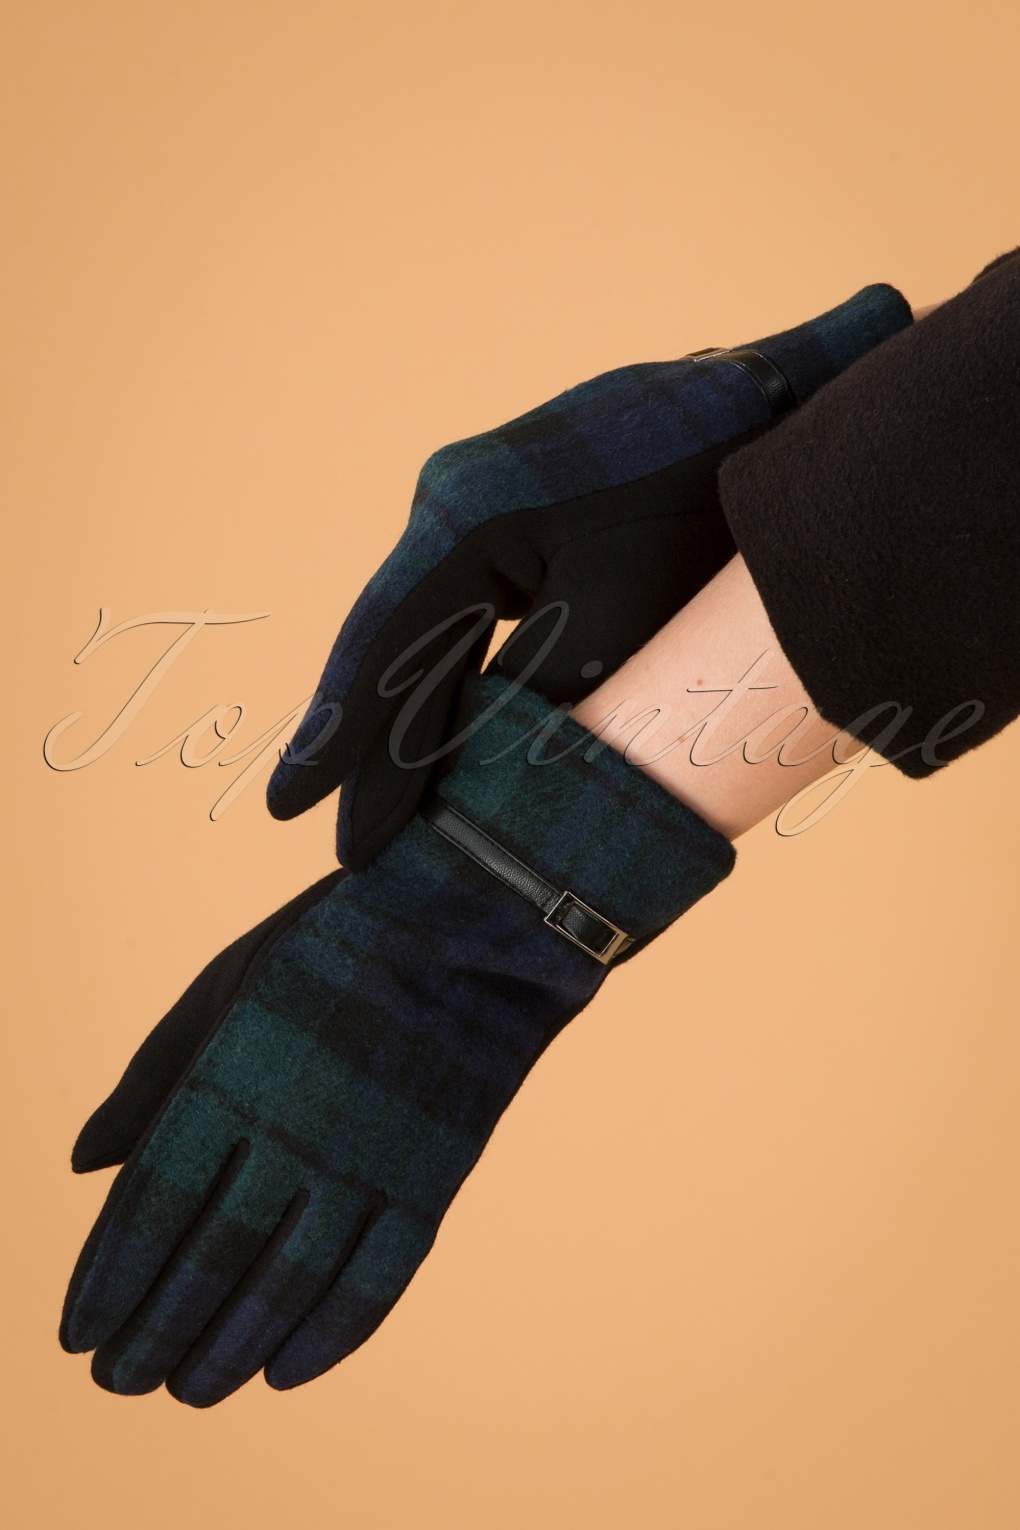 Vintage Style Gloves- Long, Wrist, Evening, Day, Leather, Lace 50s Tartan Gloves in Green £15.09 AT vintagedancer.com